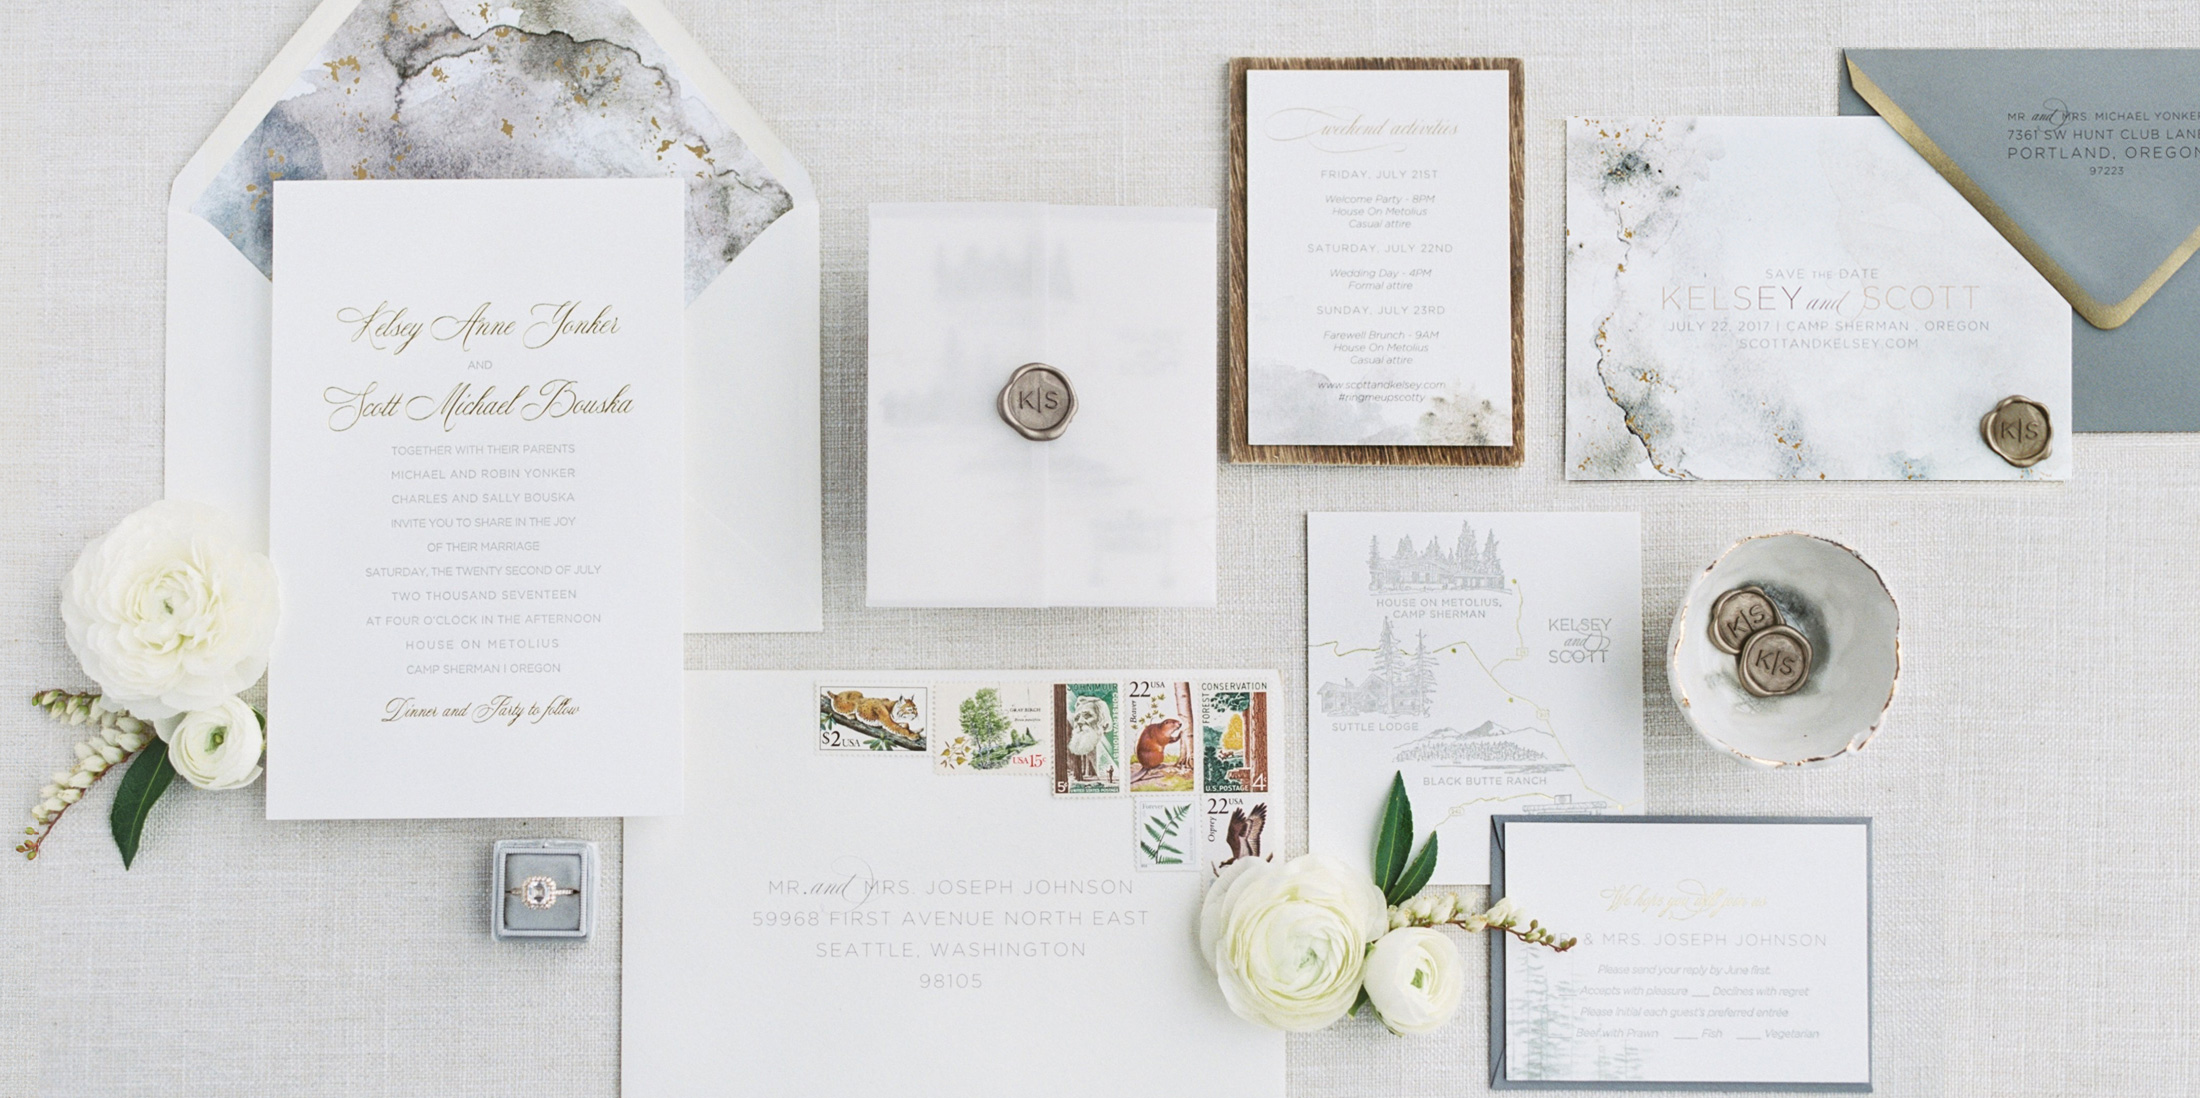 Tie_That_Binds_Luxury_WeddingInvitations00005.jpg